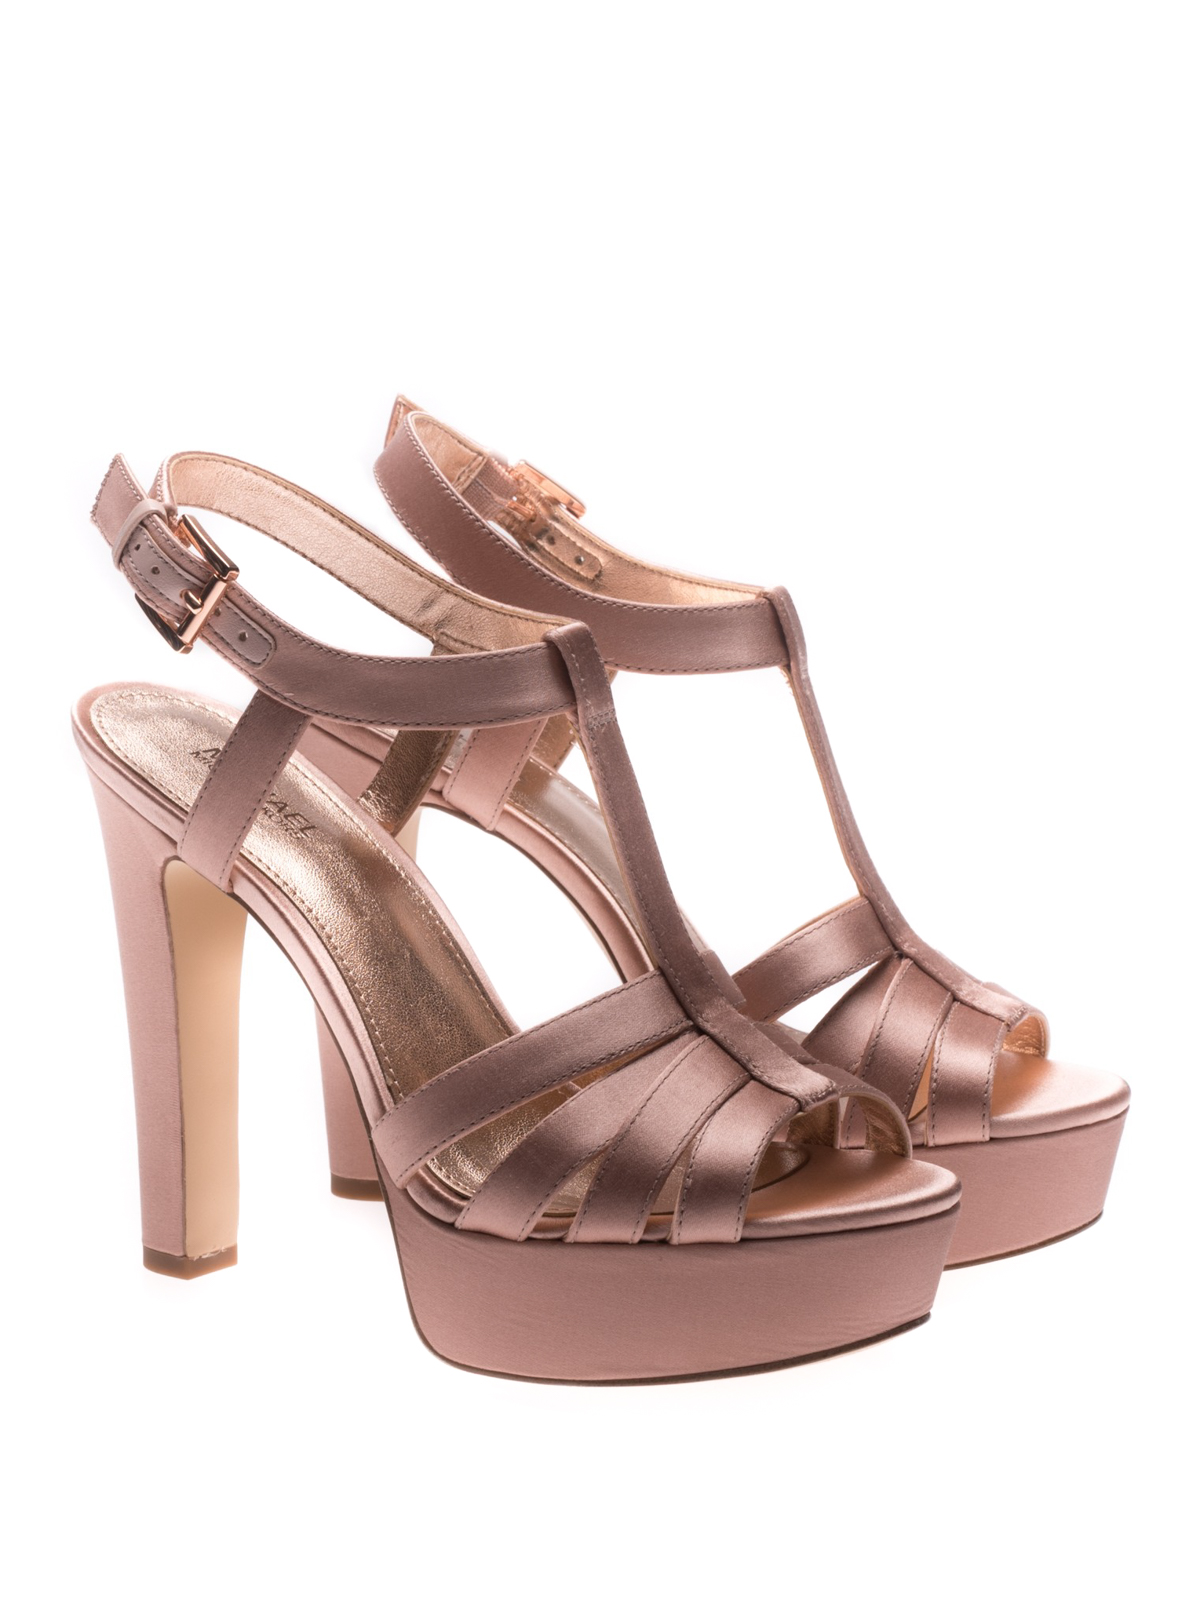 f1fcbff728c MICHAEL KORS  sandals online - Catalina satin high heel sandals